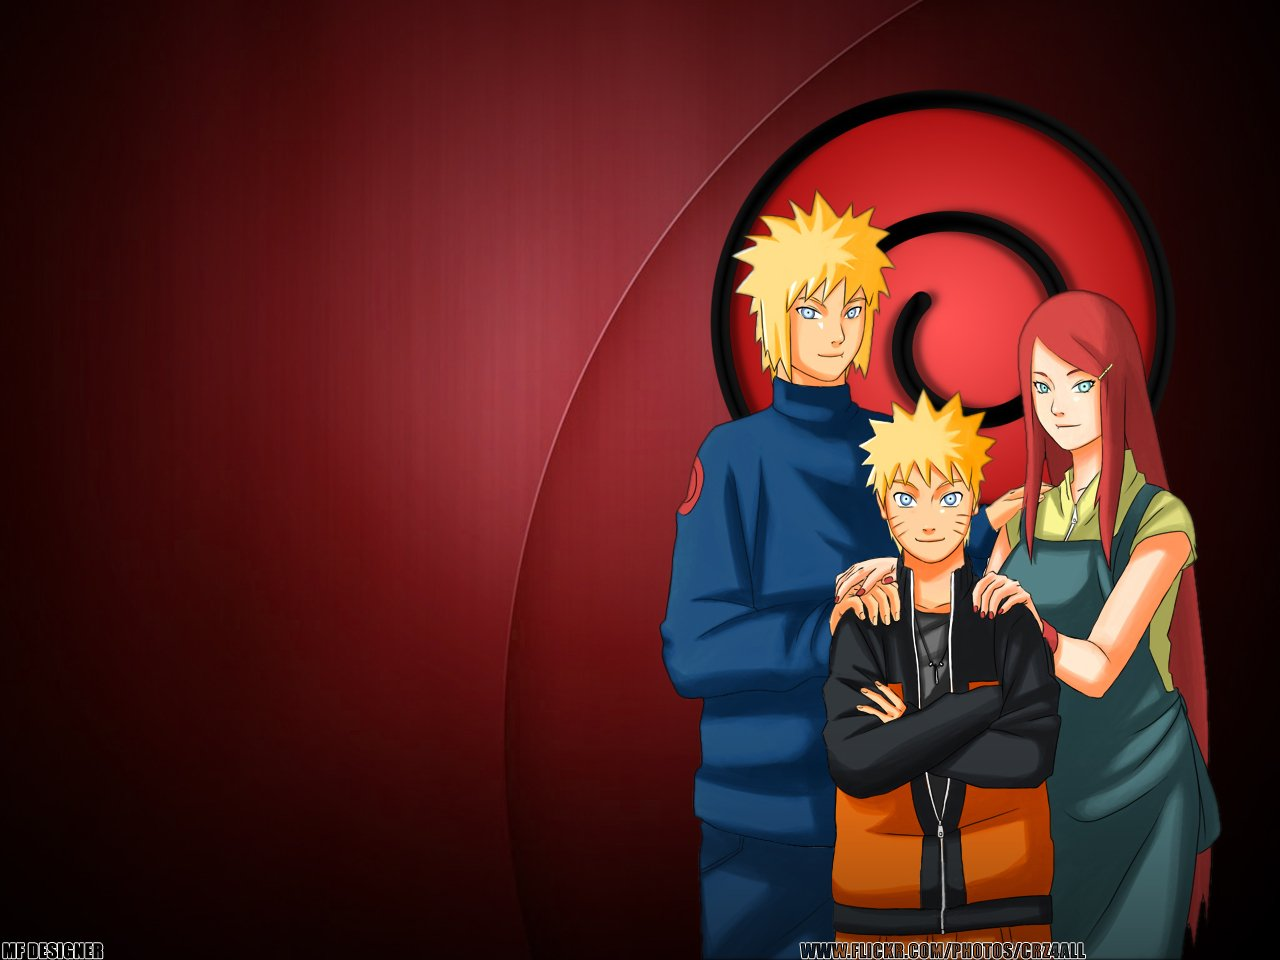 Anime Naruto Wallpaper Hot Naruto Wallpapers 1280x960